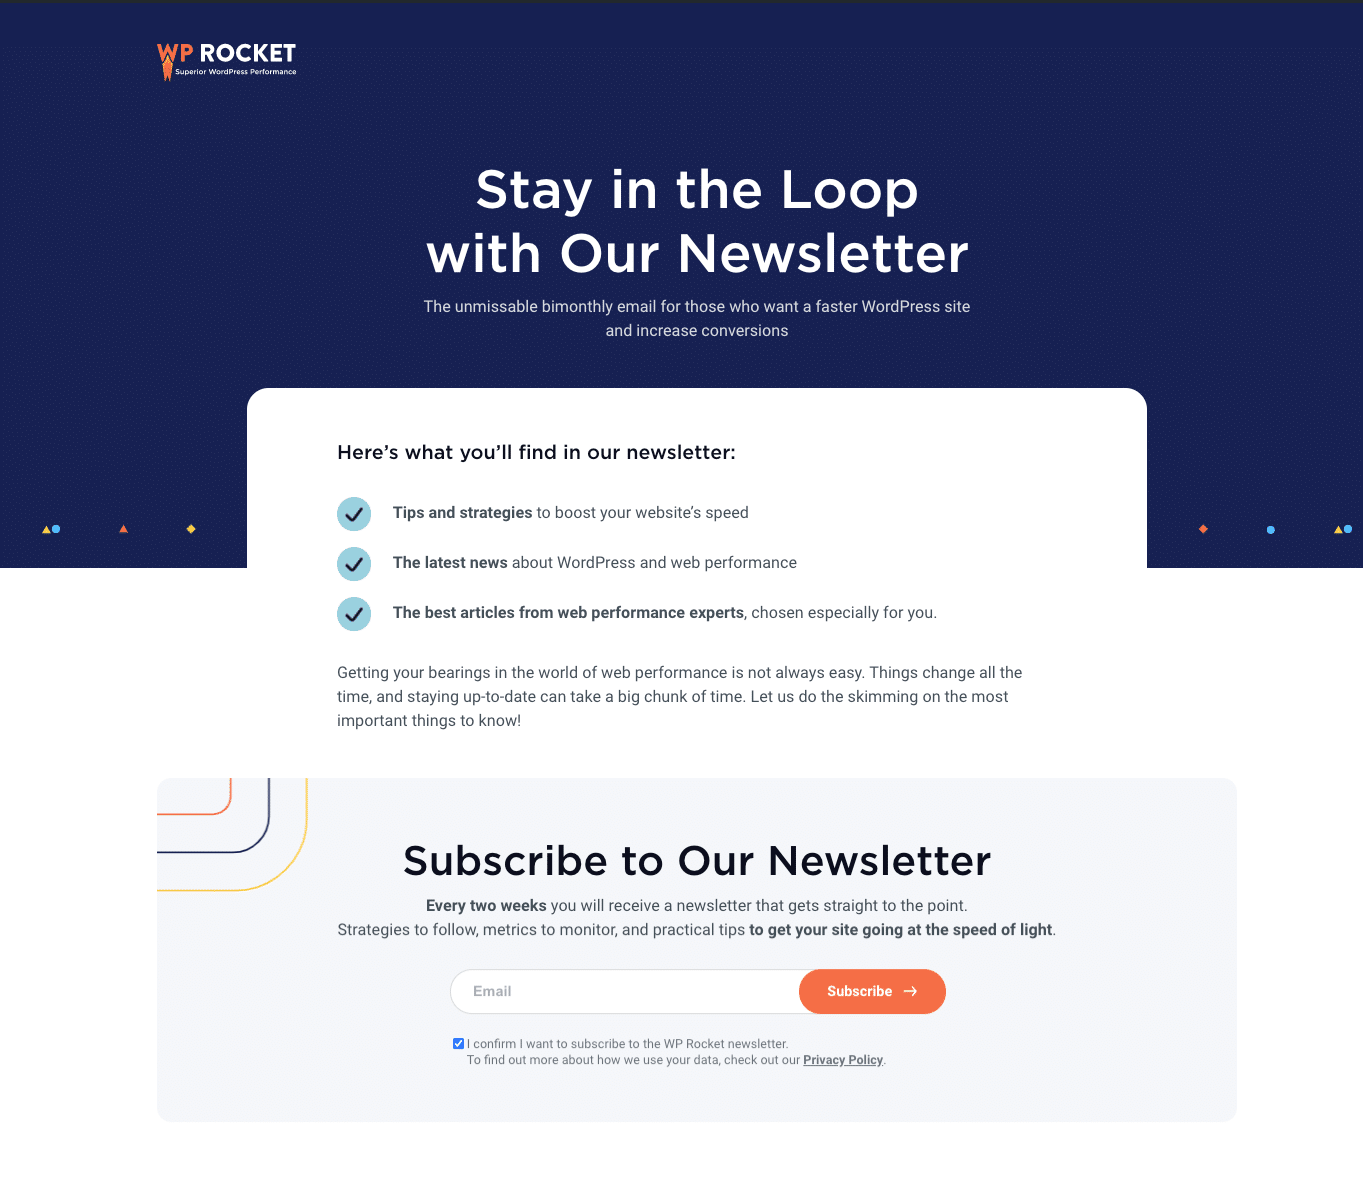 The newsletter landing page